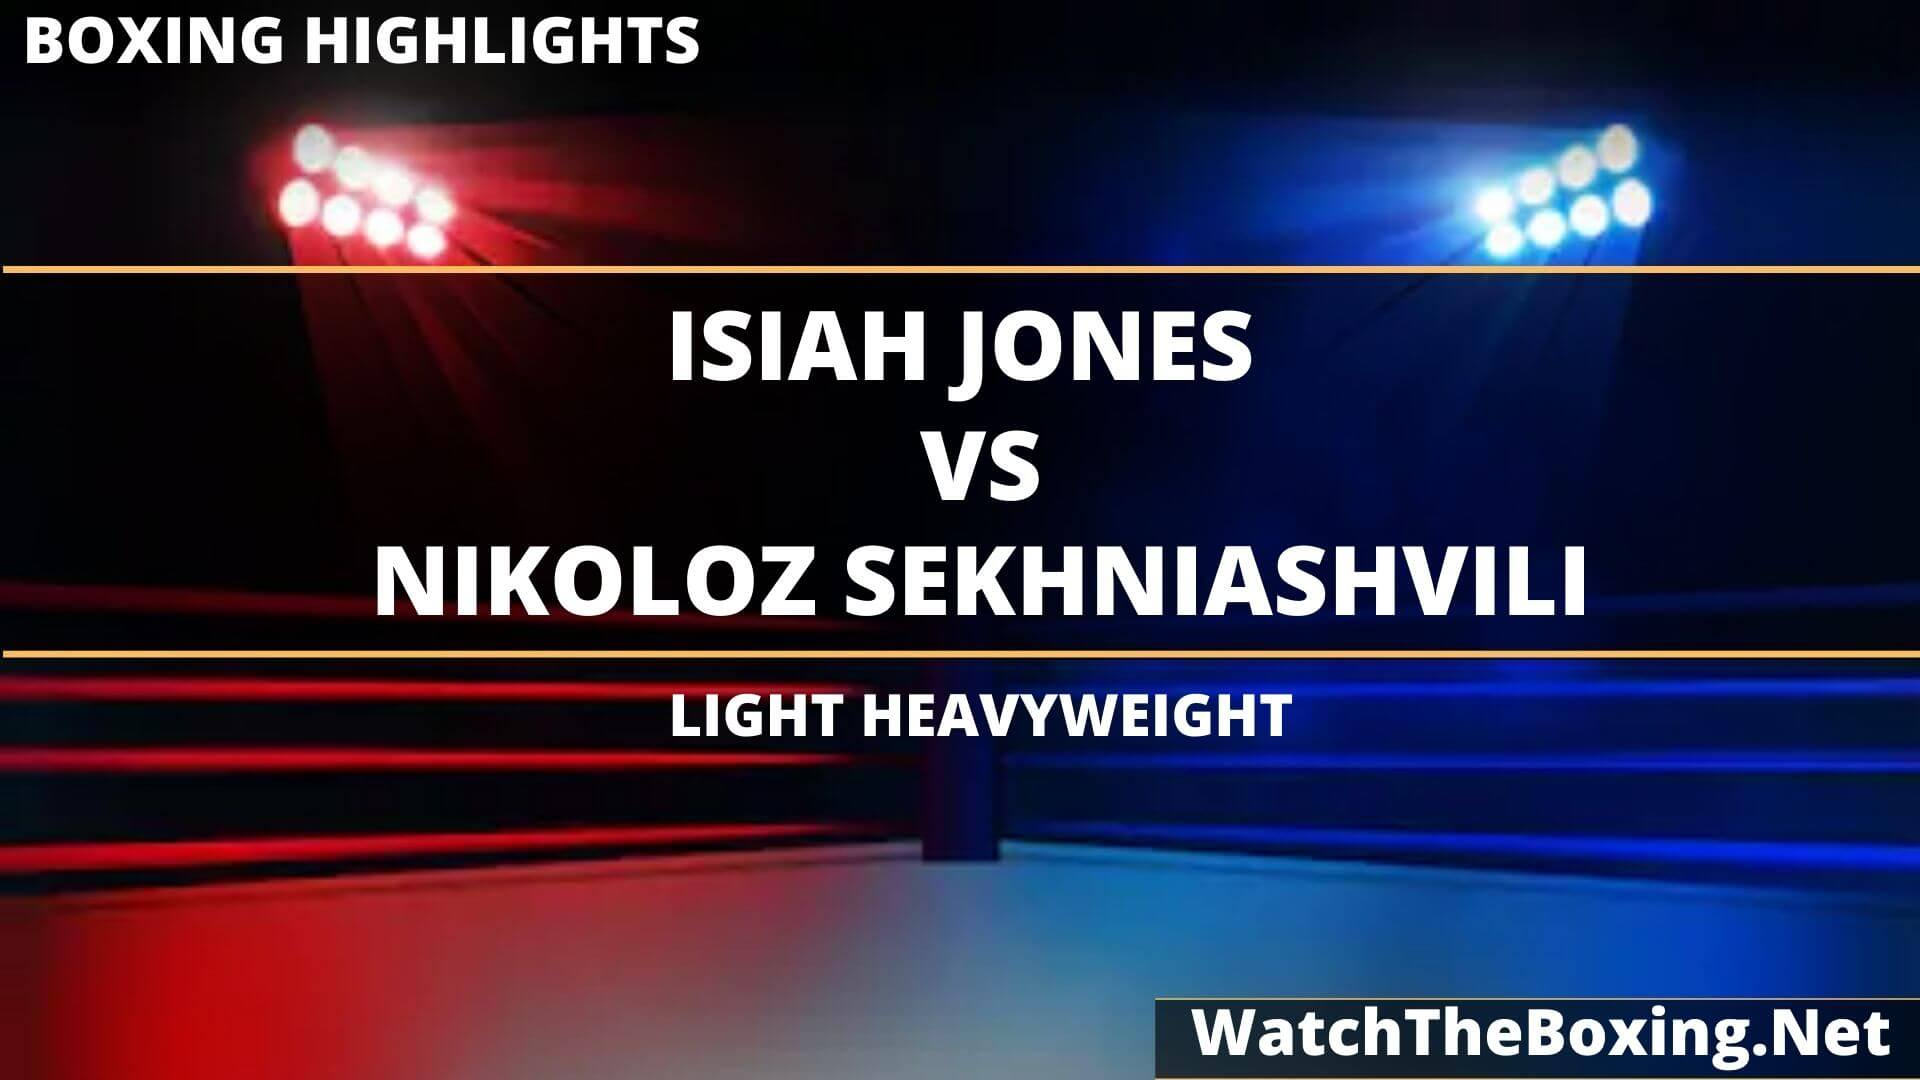 Isiah Jones Vs Nikoloz Sekhniashvili Highlights 2020 Light Heavyweight